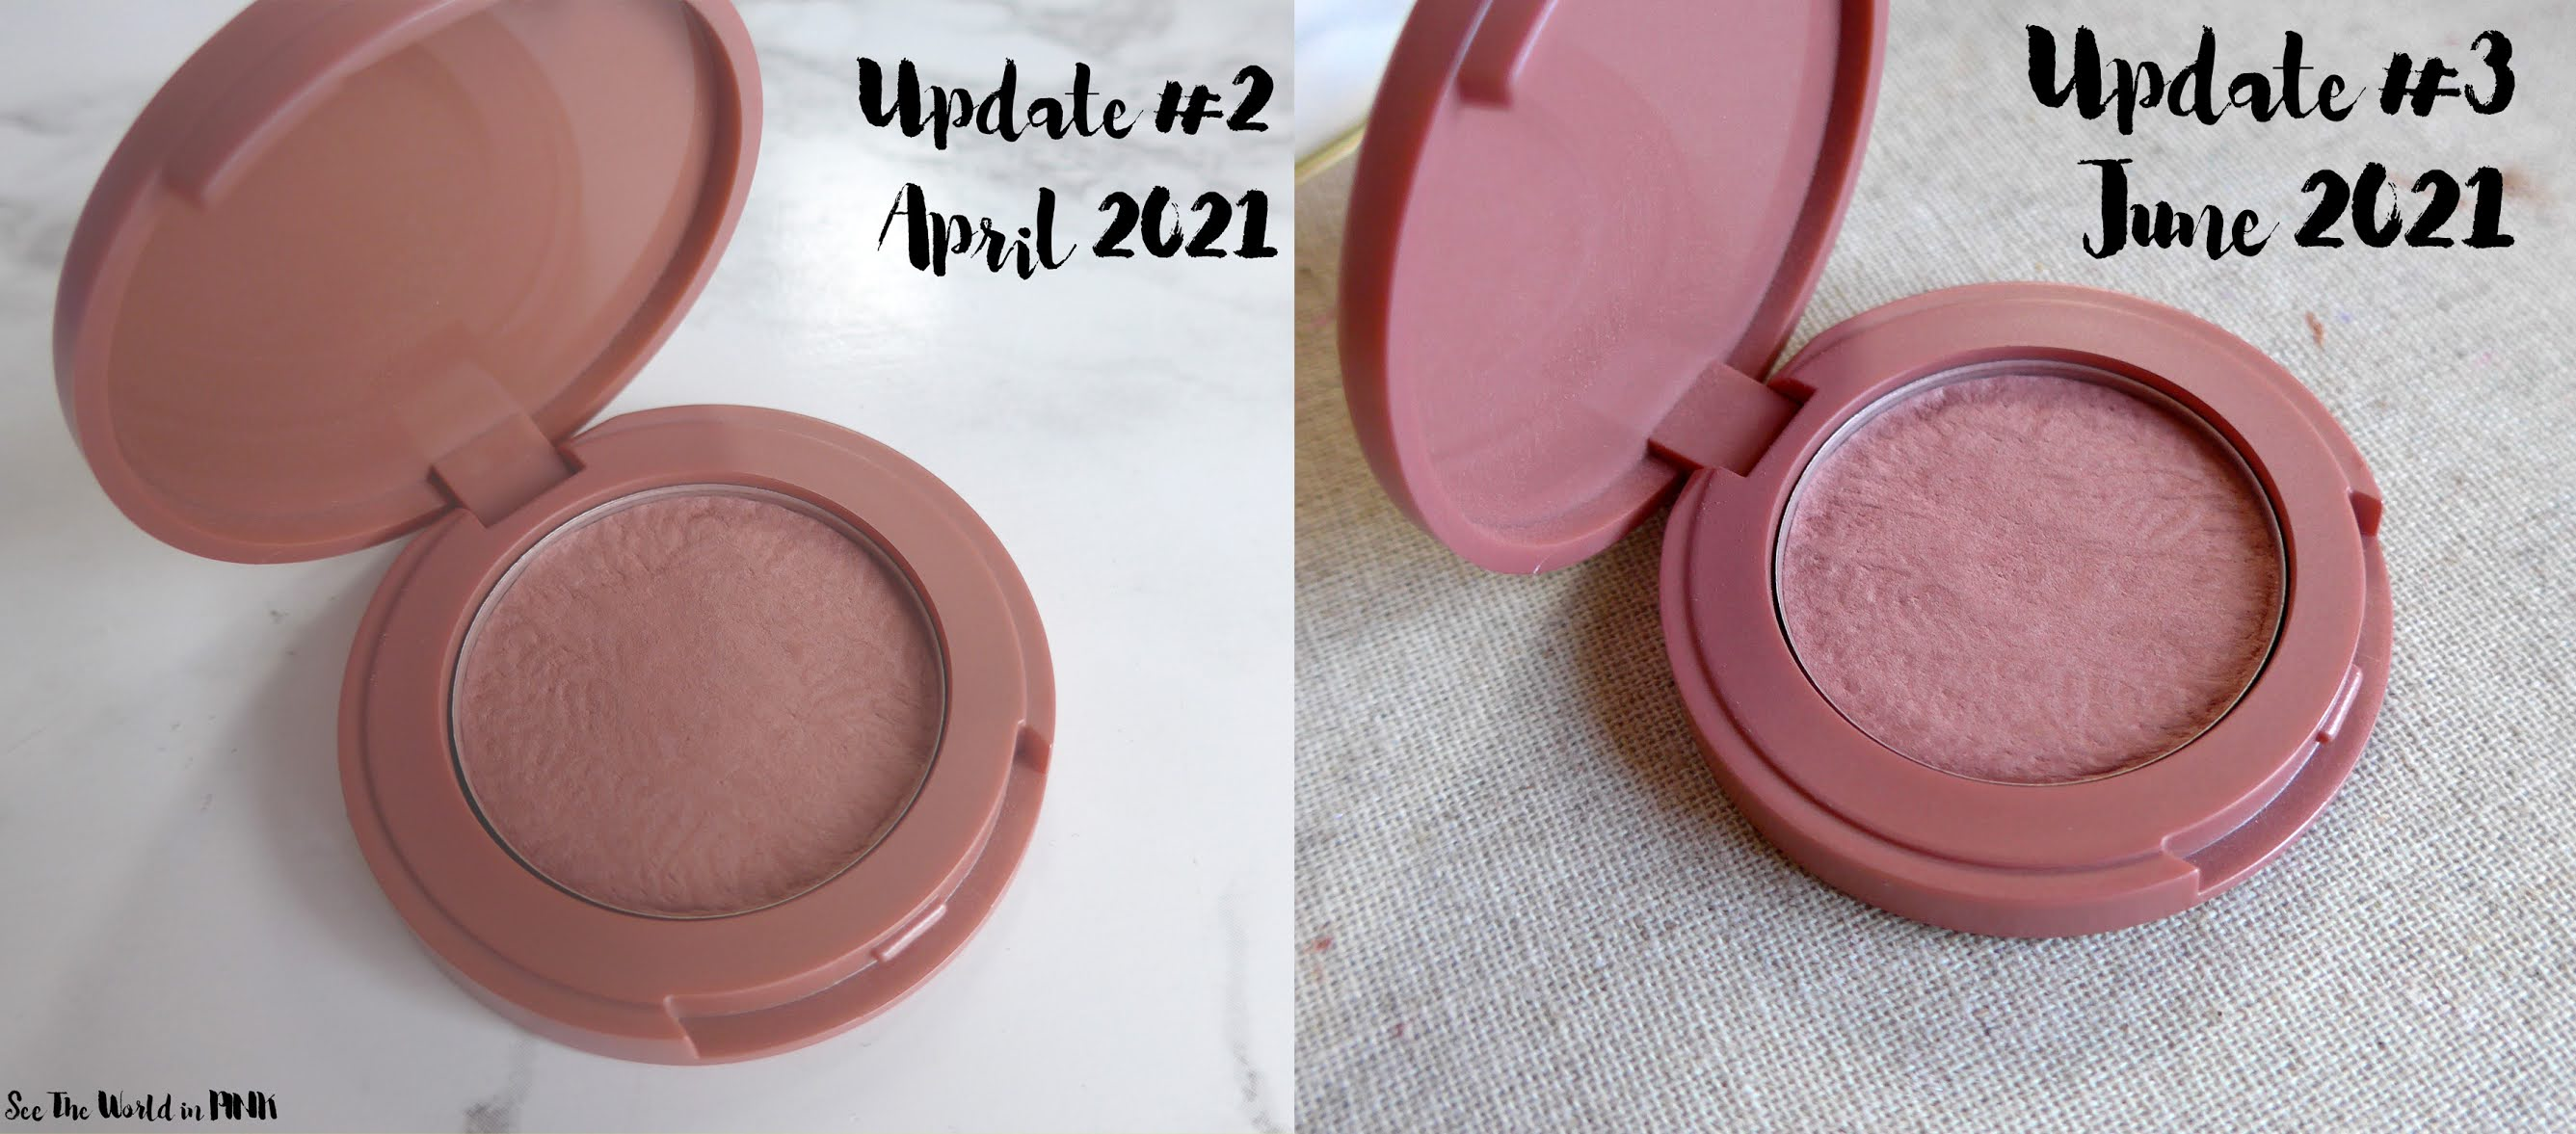 Project Pan 21 in 2021 ~ Update #3